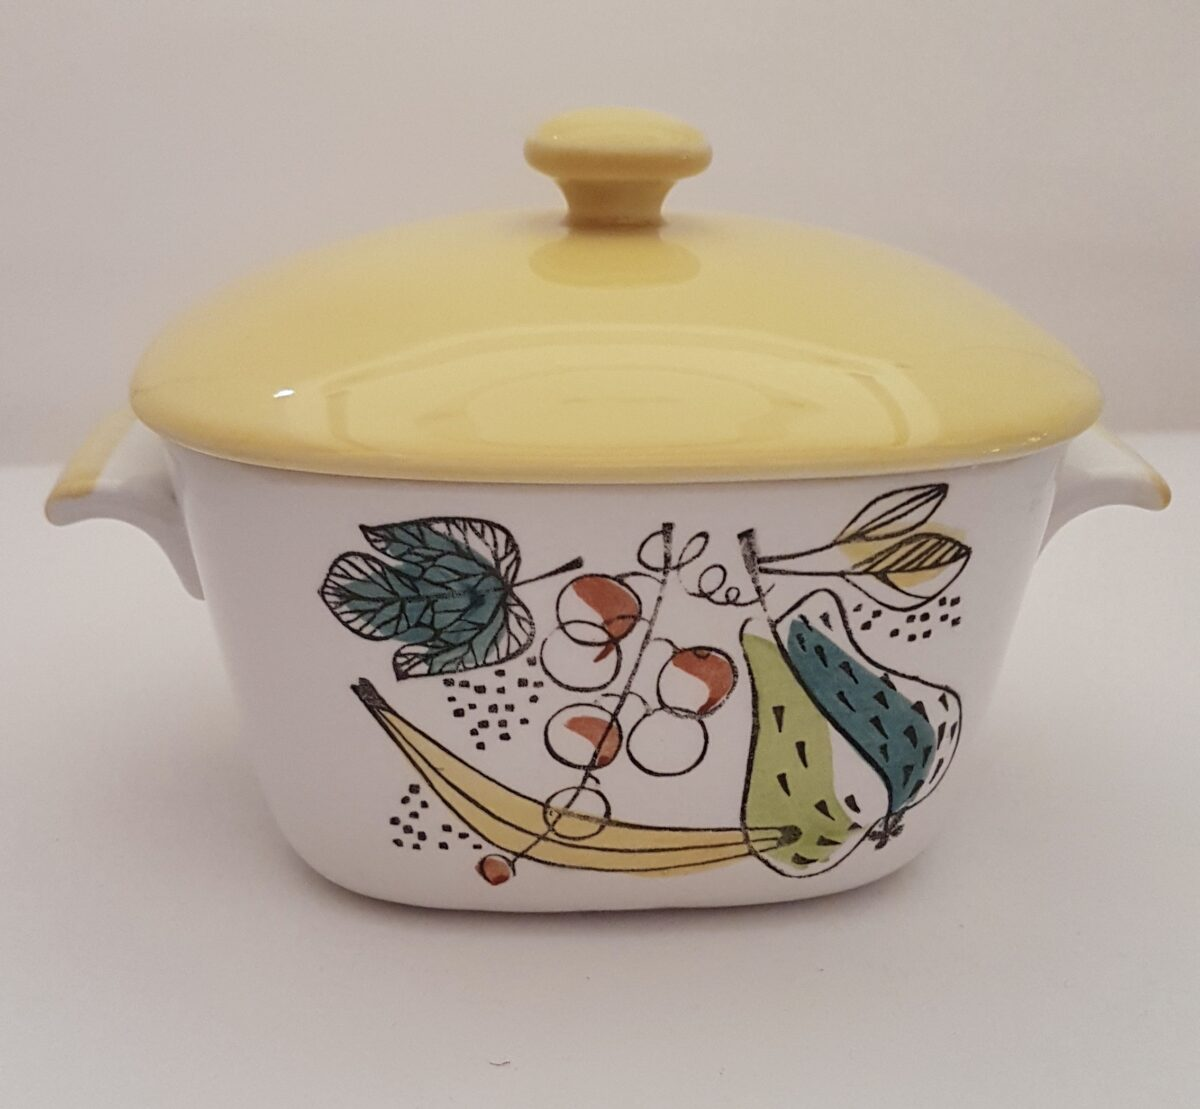 Vintage, retro casserole dish available to buy online